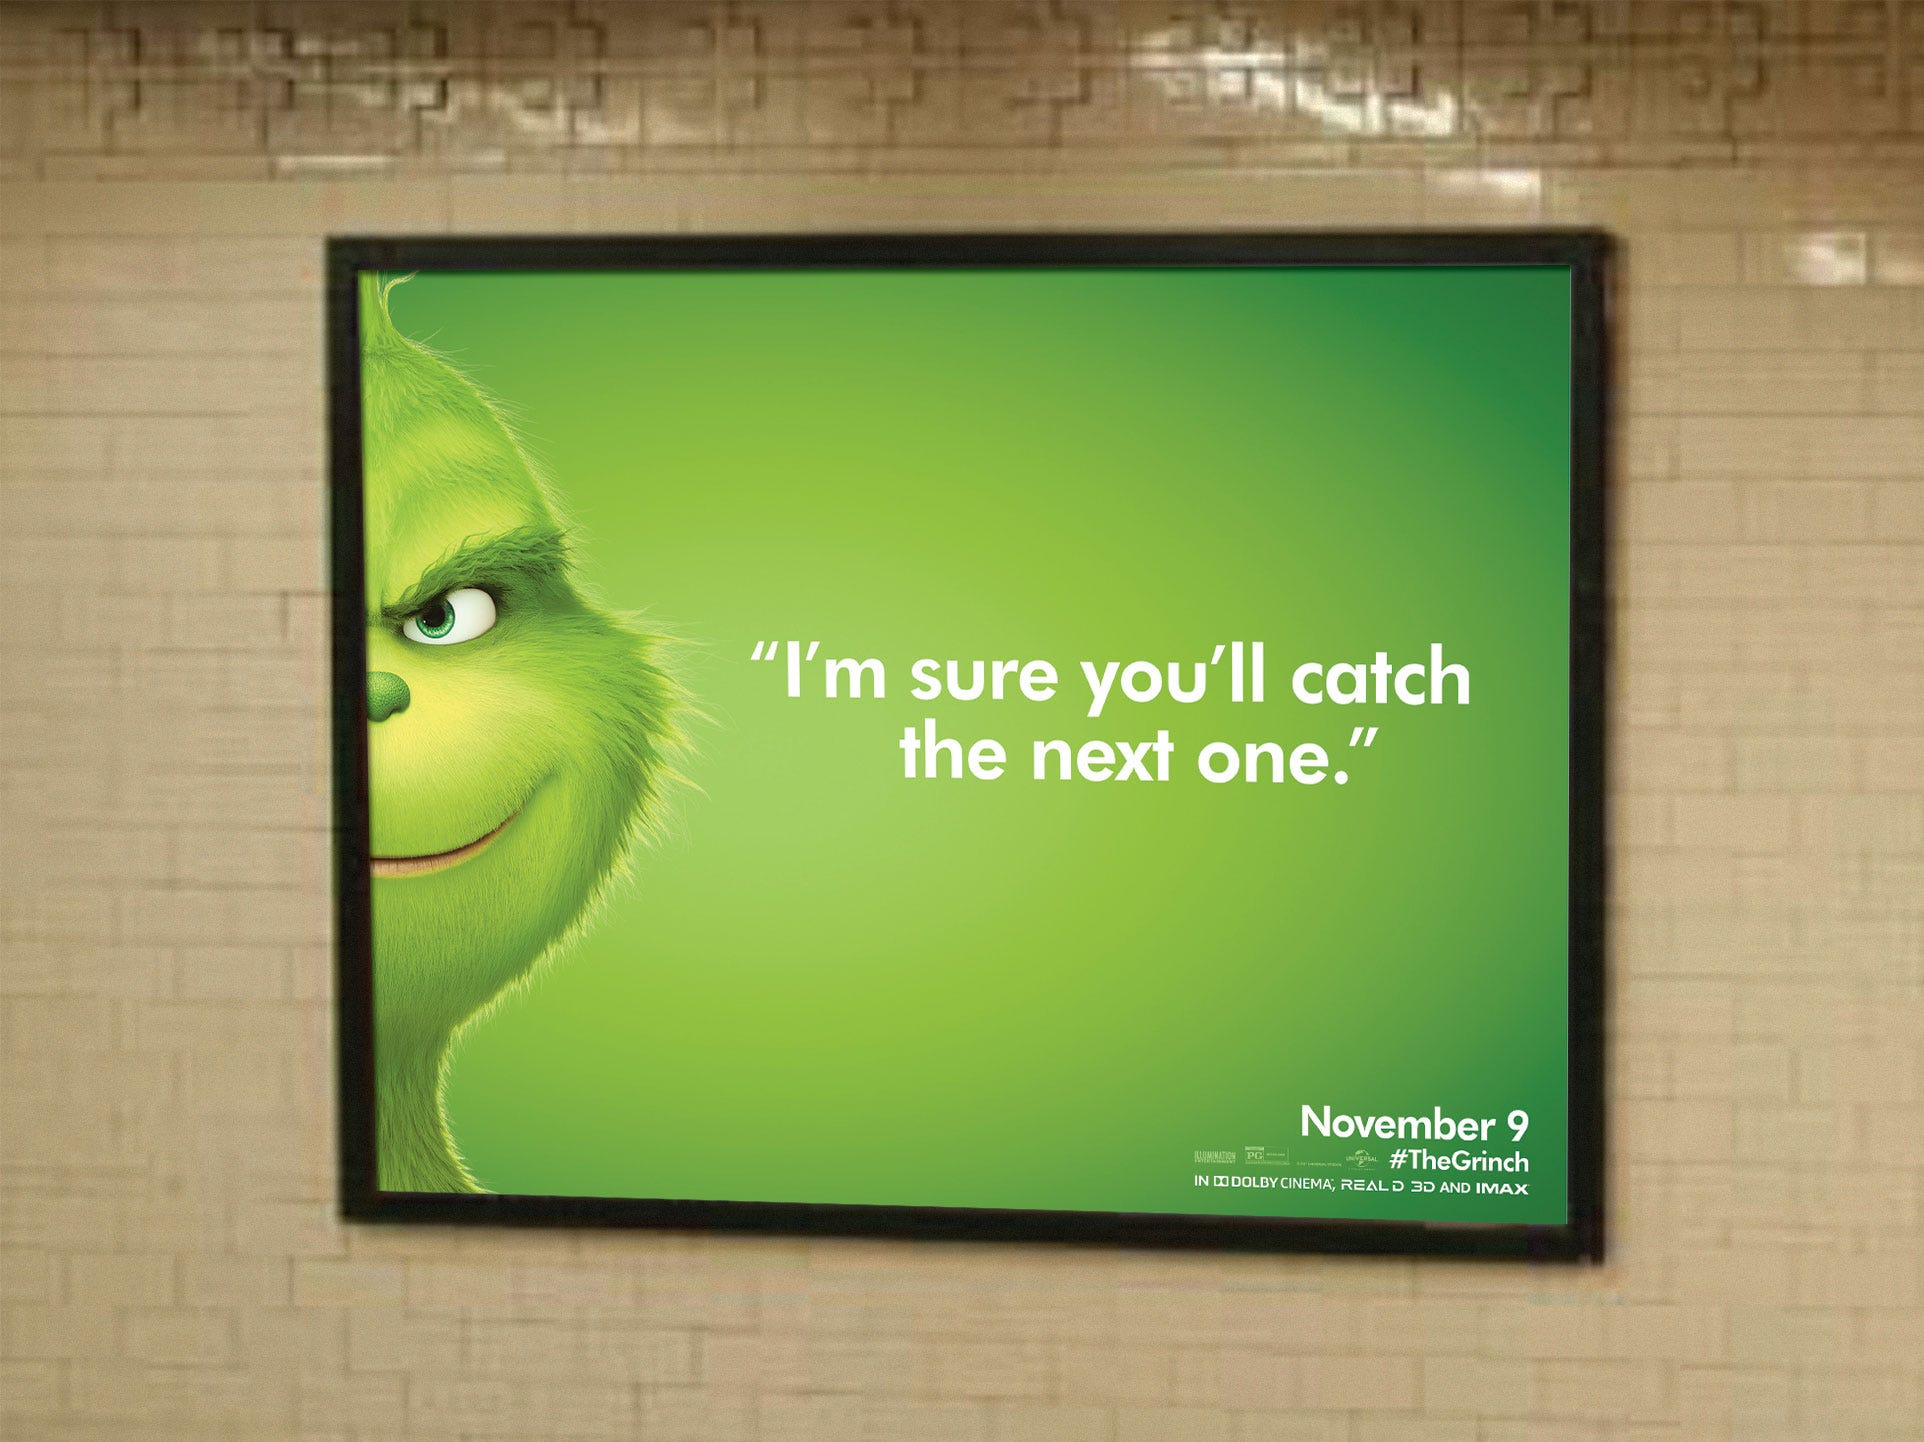 Missed your subway in New York? The Grinch rubs it in.